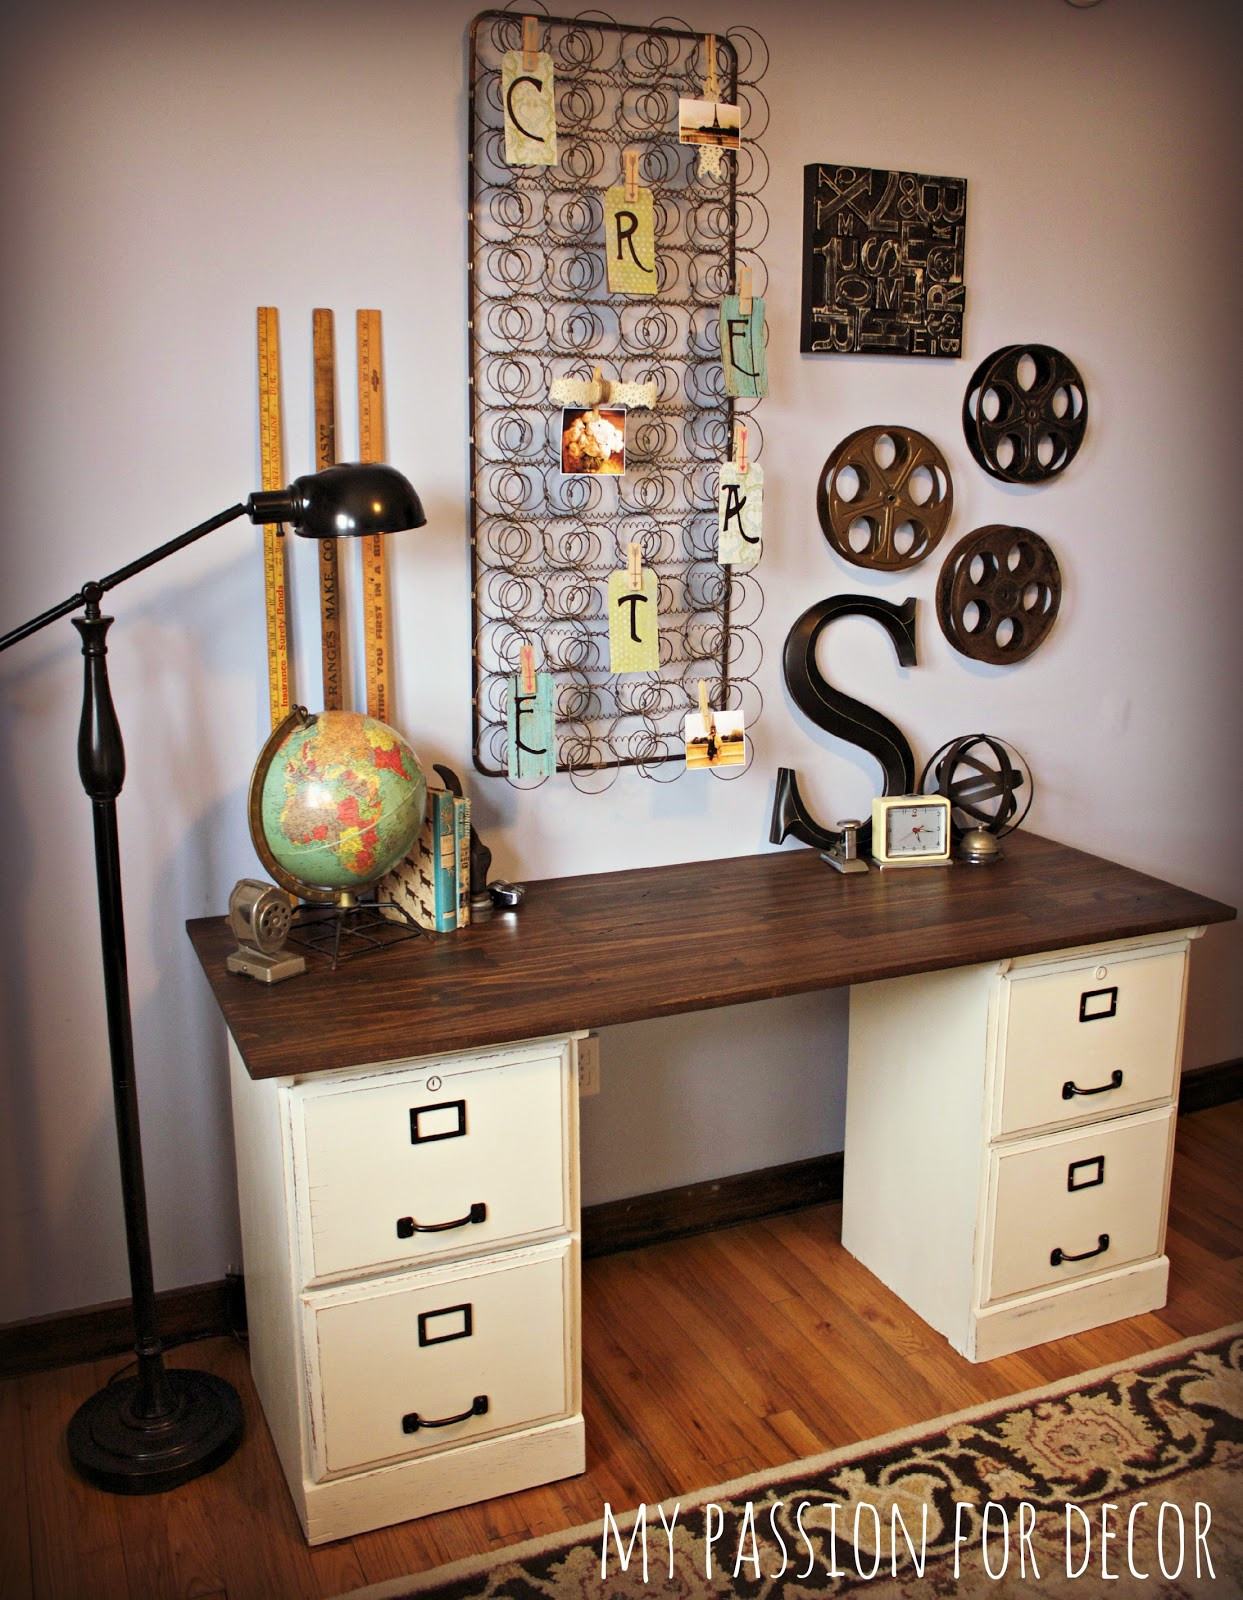 Best ideas about DIY File Cabinet Desk . Save or Pin My Passion For Decor My Pottery Barn Desk Hack Now.